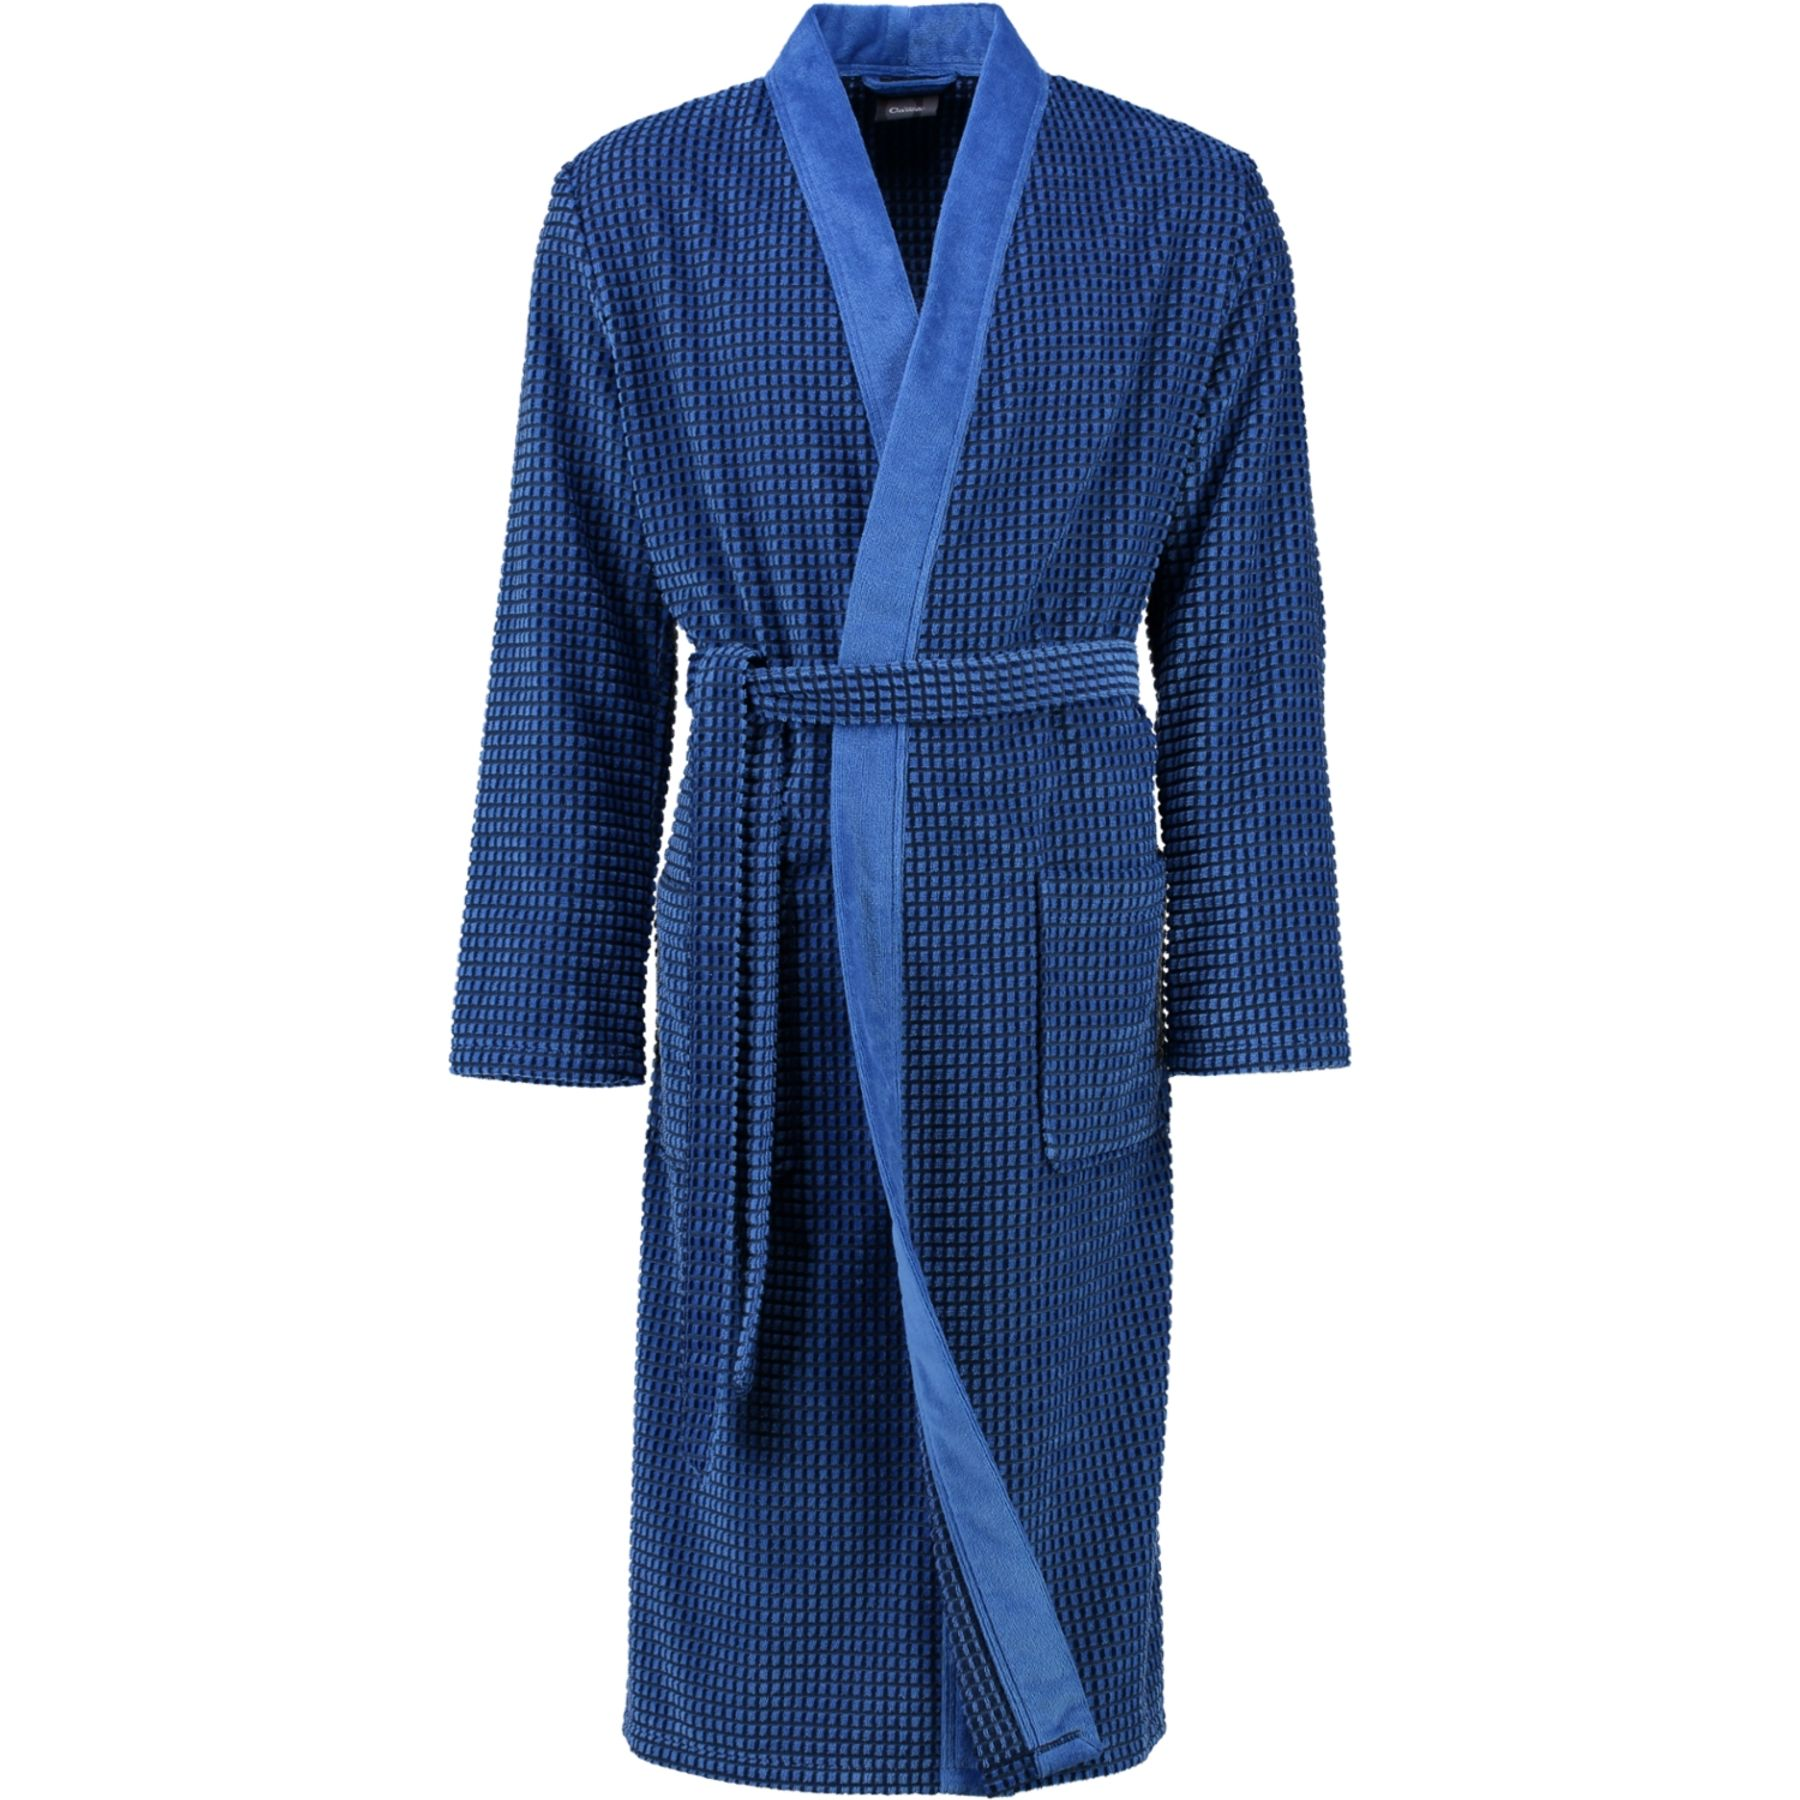 Cawö - Herren Walkvelours Bademantel in Kimono-Form (4843) – Bild 1